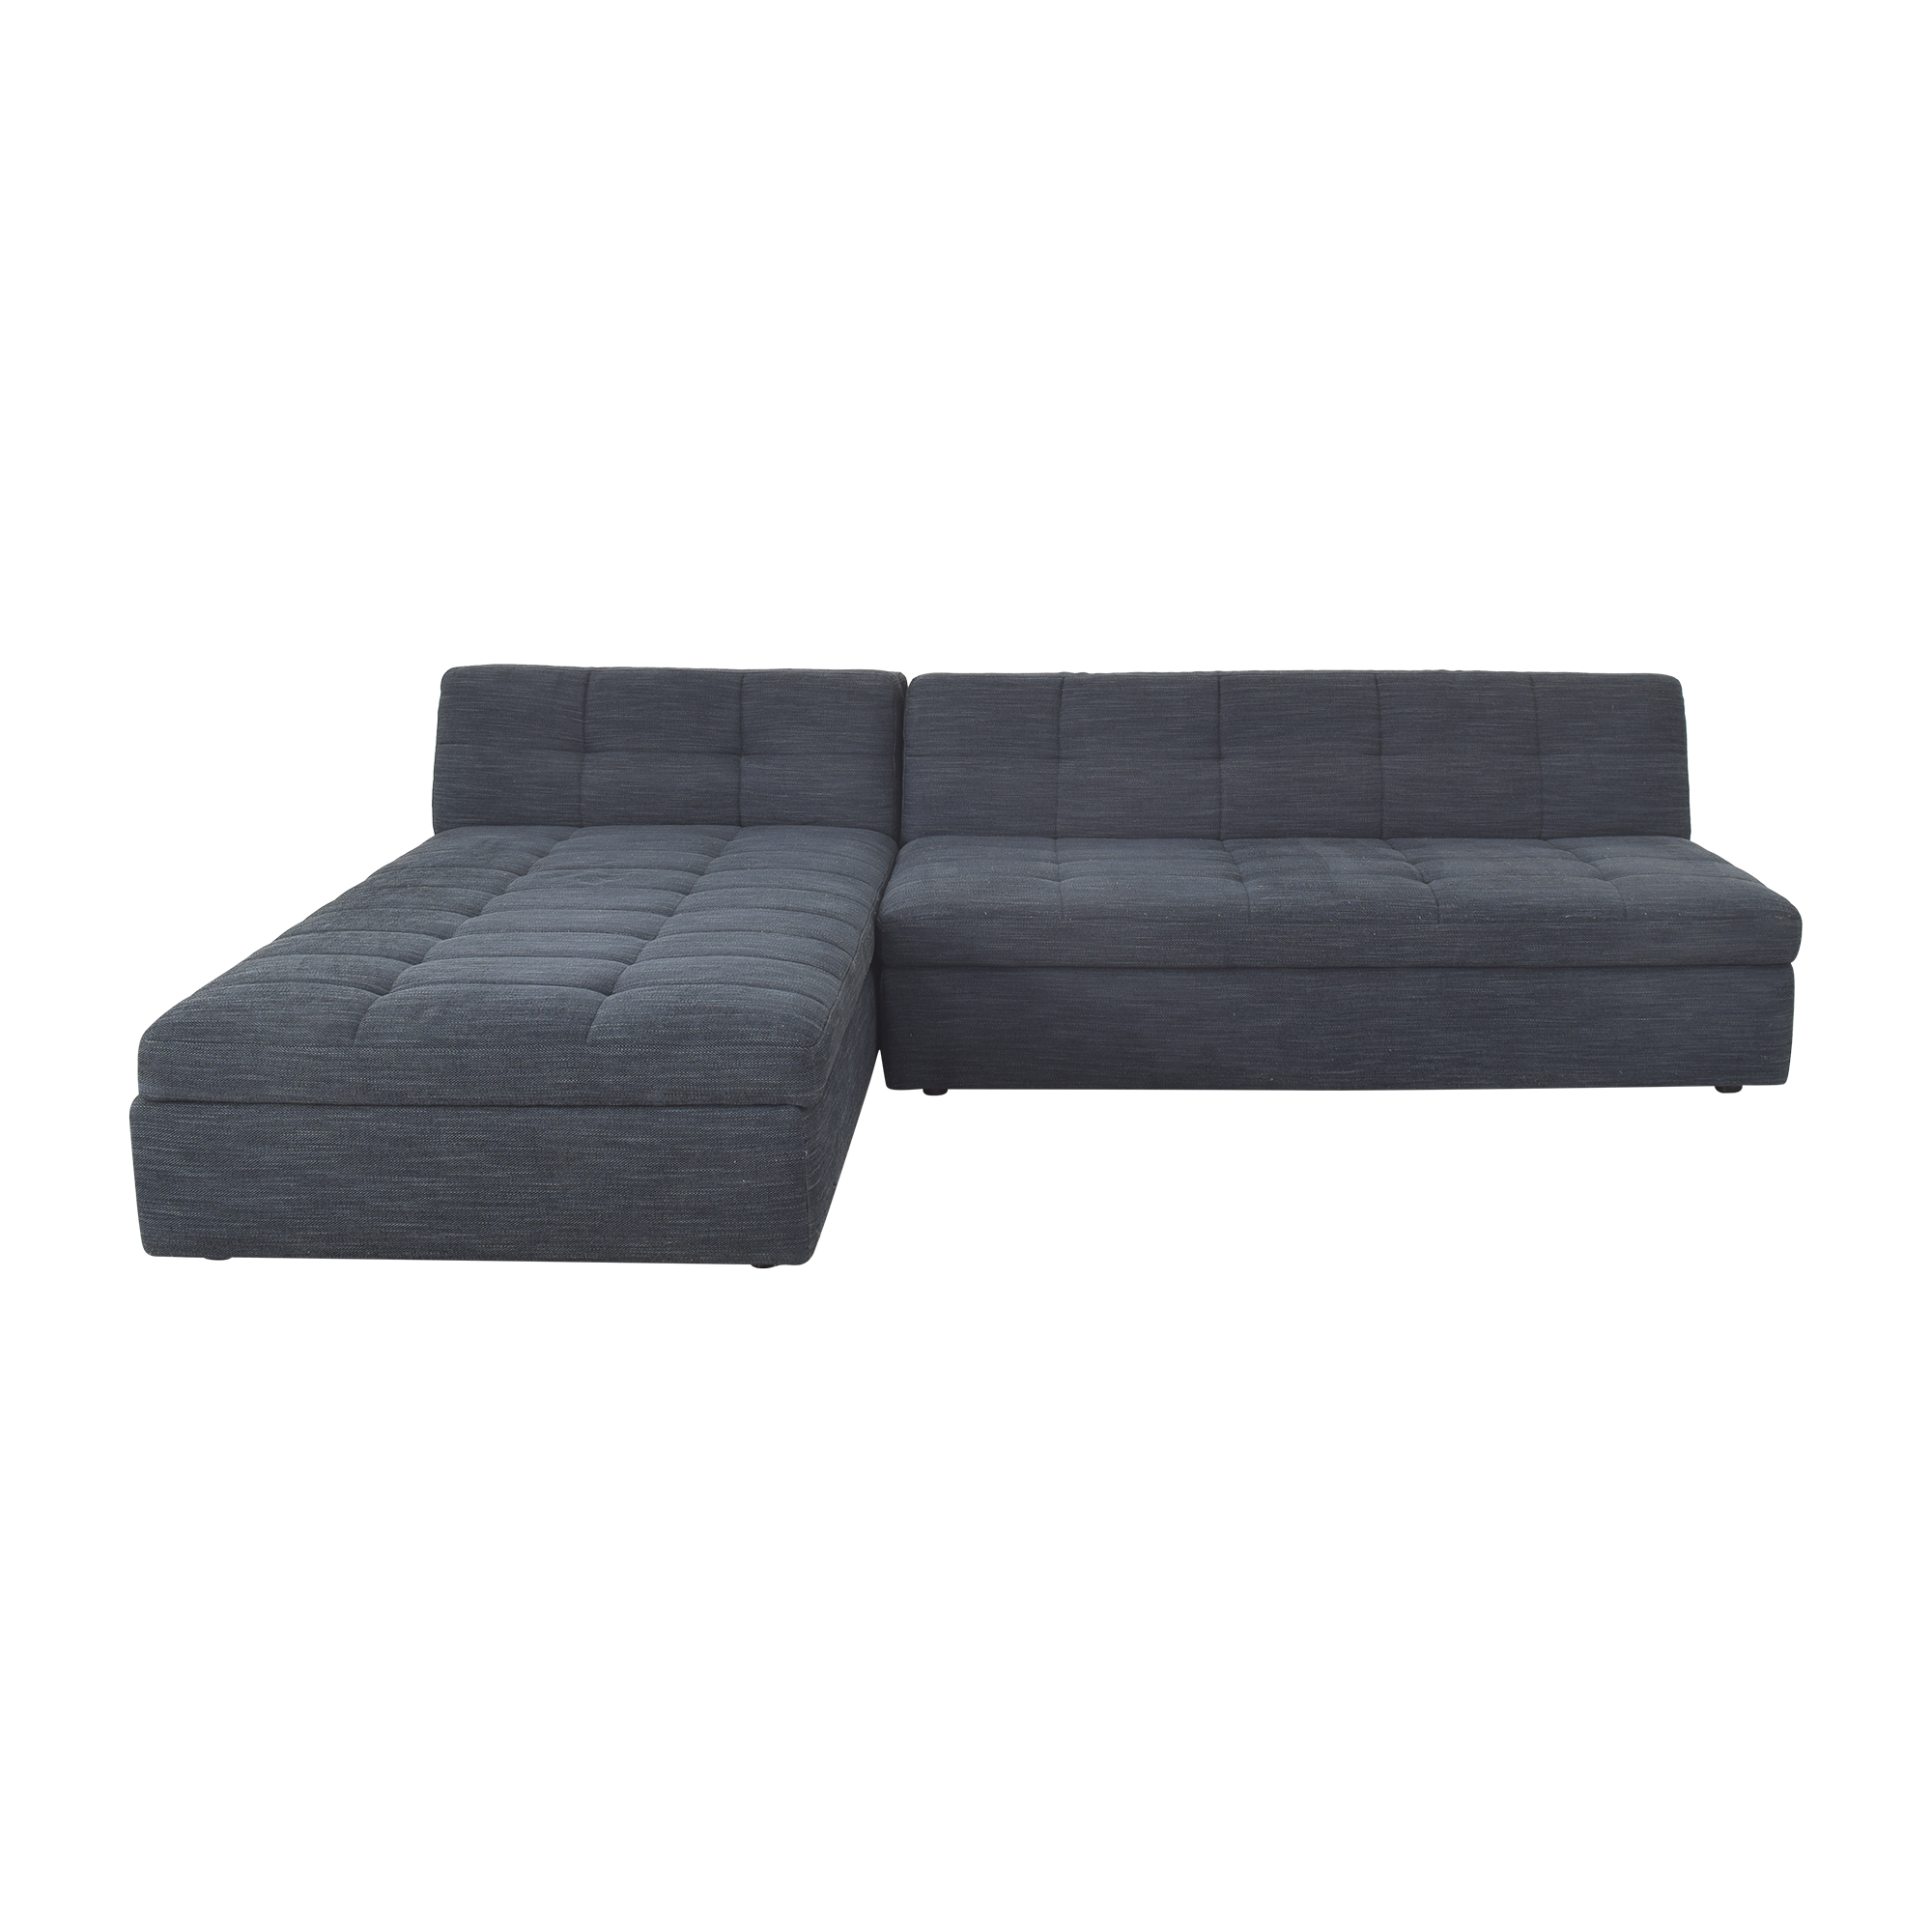 West Elm West Elm Chaise Sectional with Storage